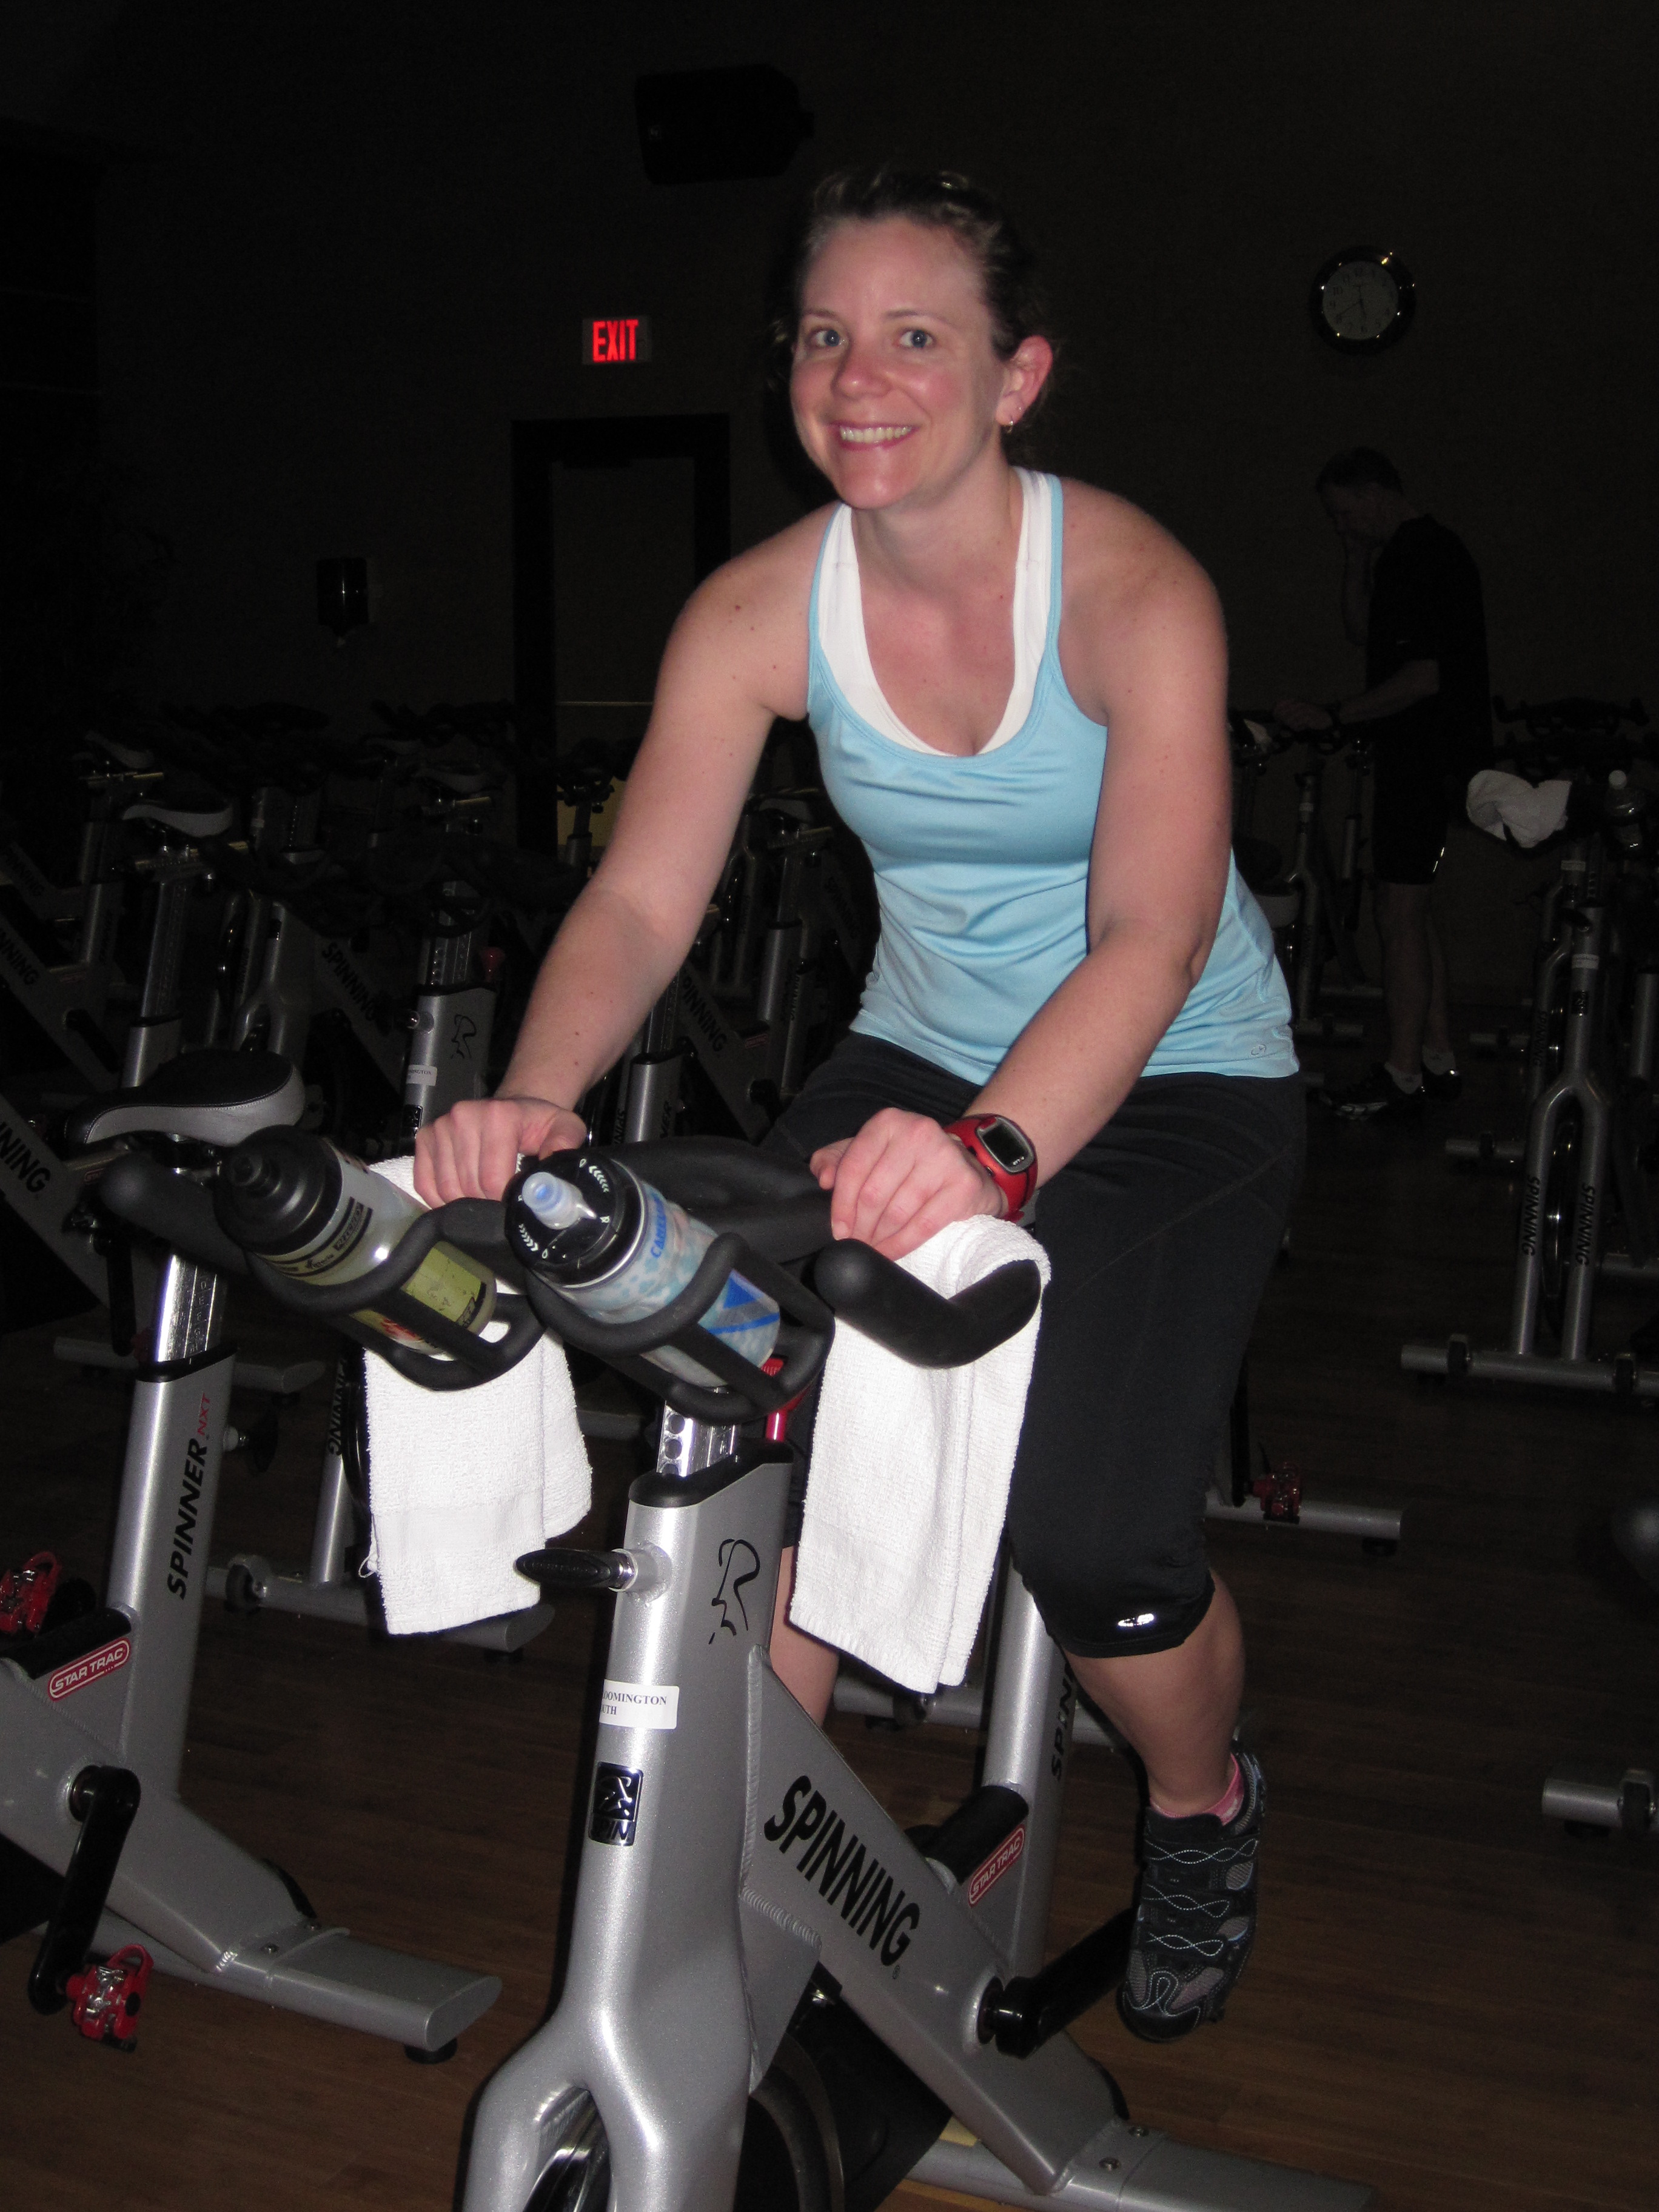 friend-mom-shows-panties A regular at group cycle. This mama's got it dialed in!